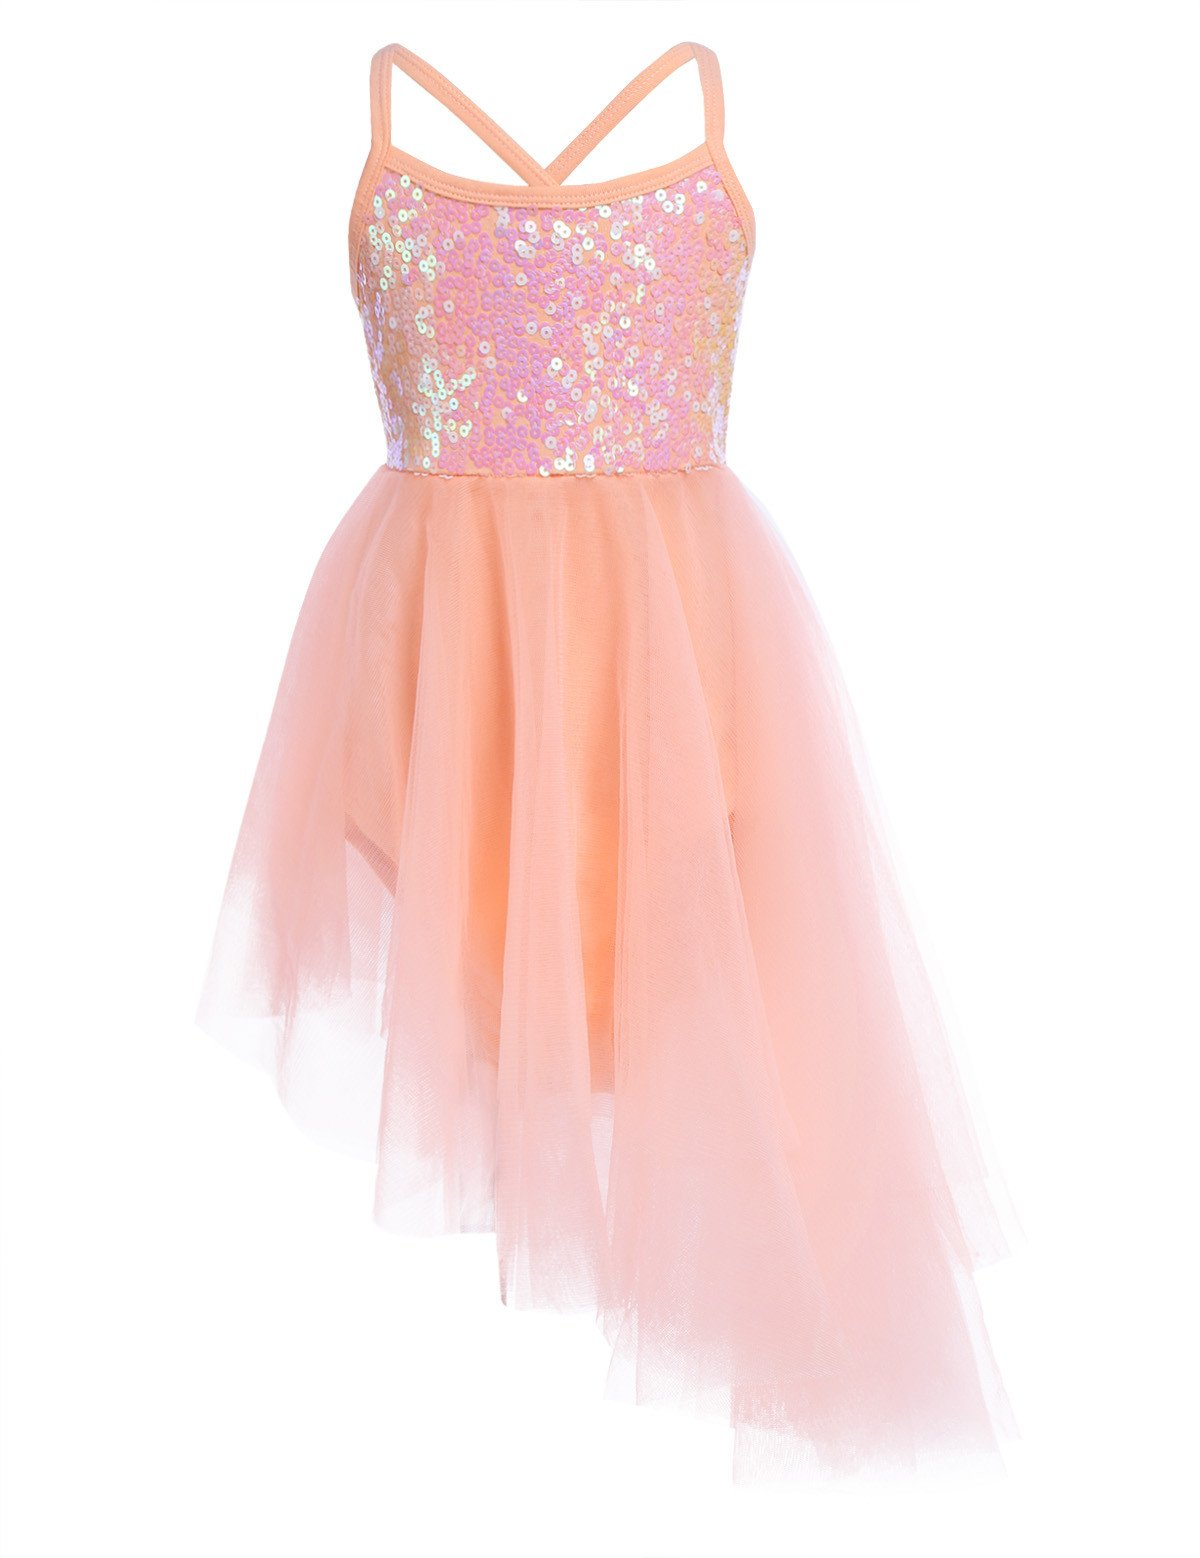 iiniim Kids Girls' Sleeveless Sequined Ballet Leotard Outfit Dance Tutu Dress, Hi-lo Orange, 5-6 by iiniim